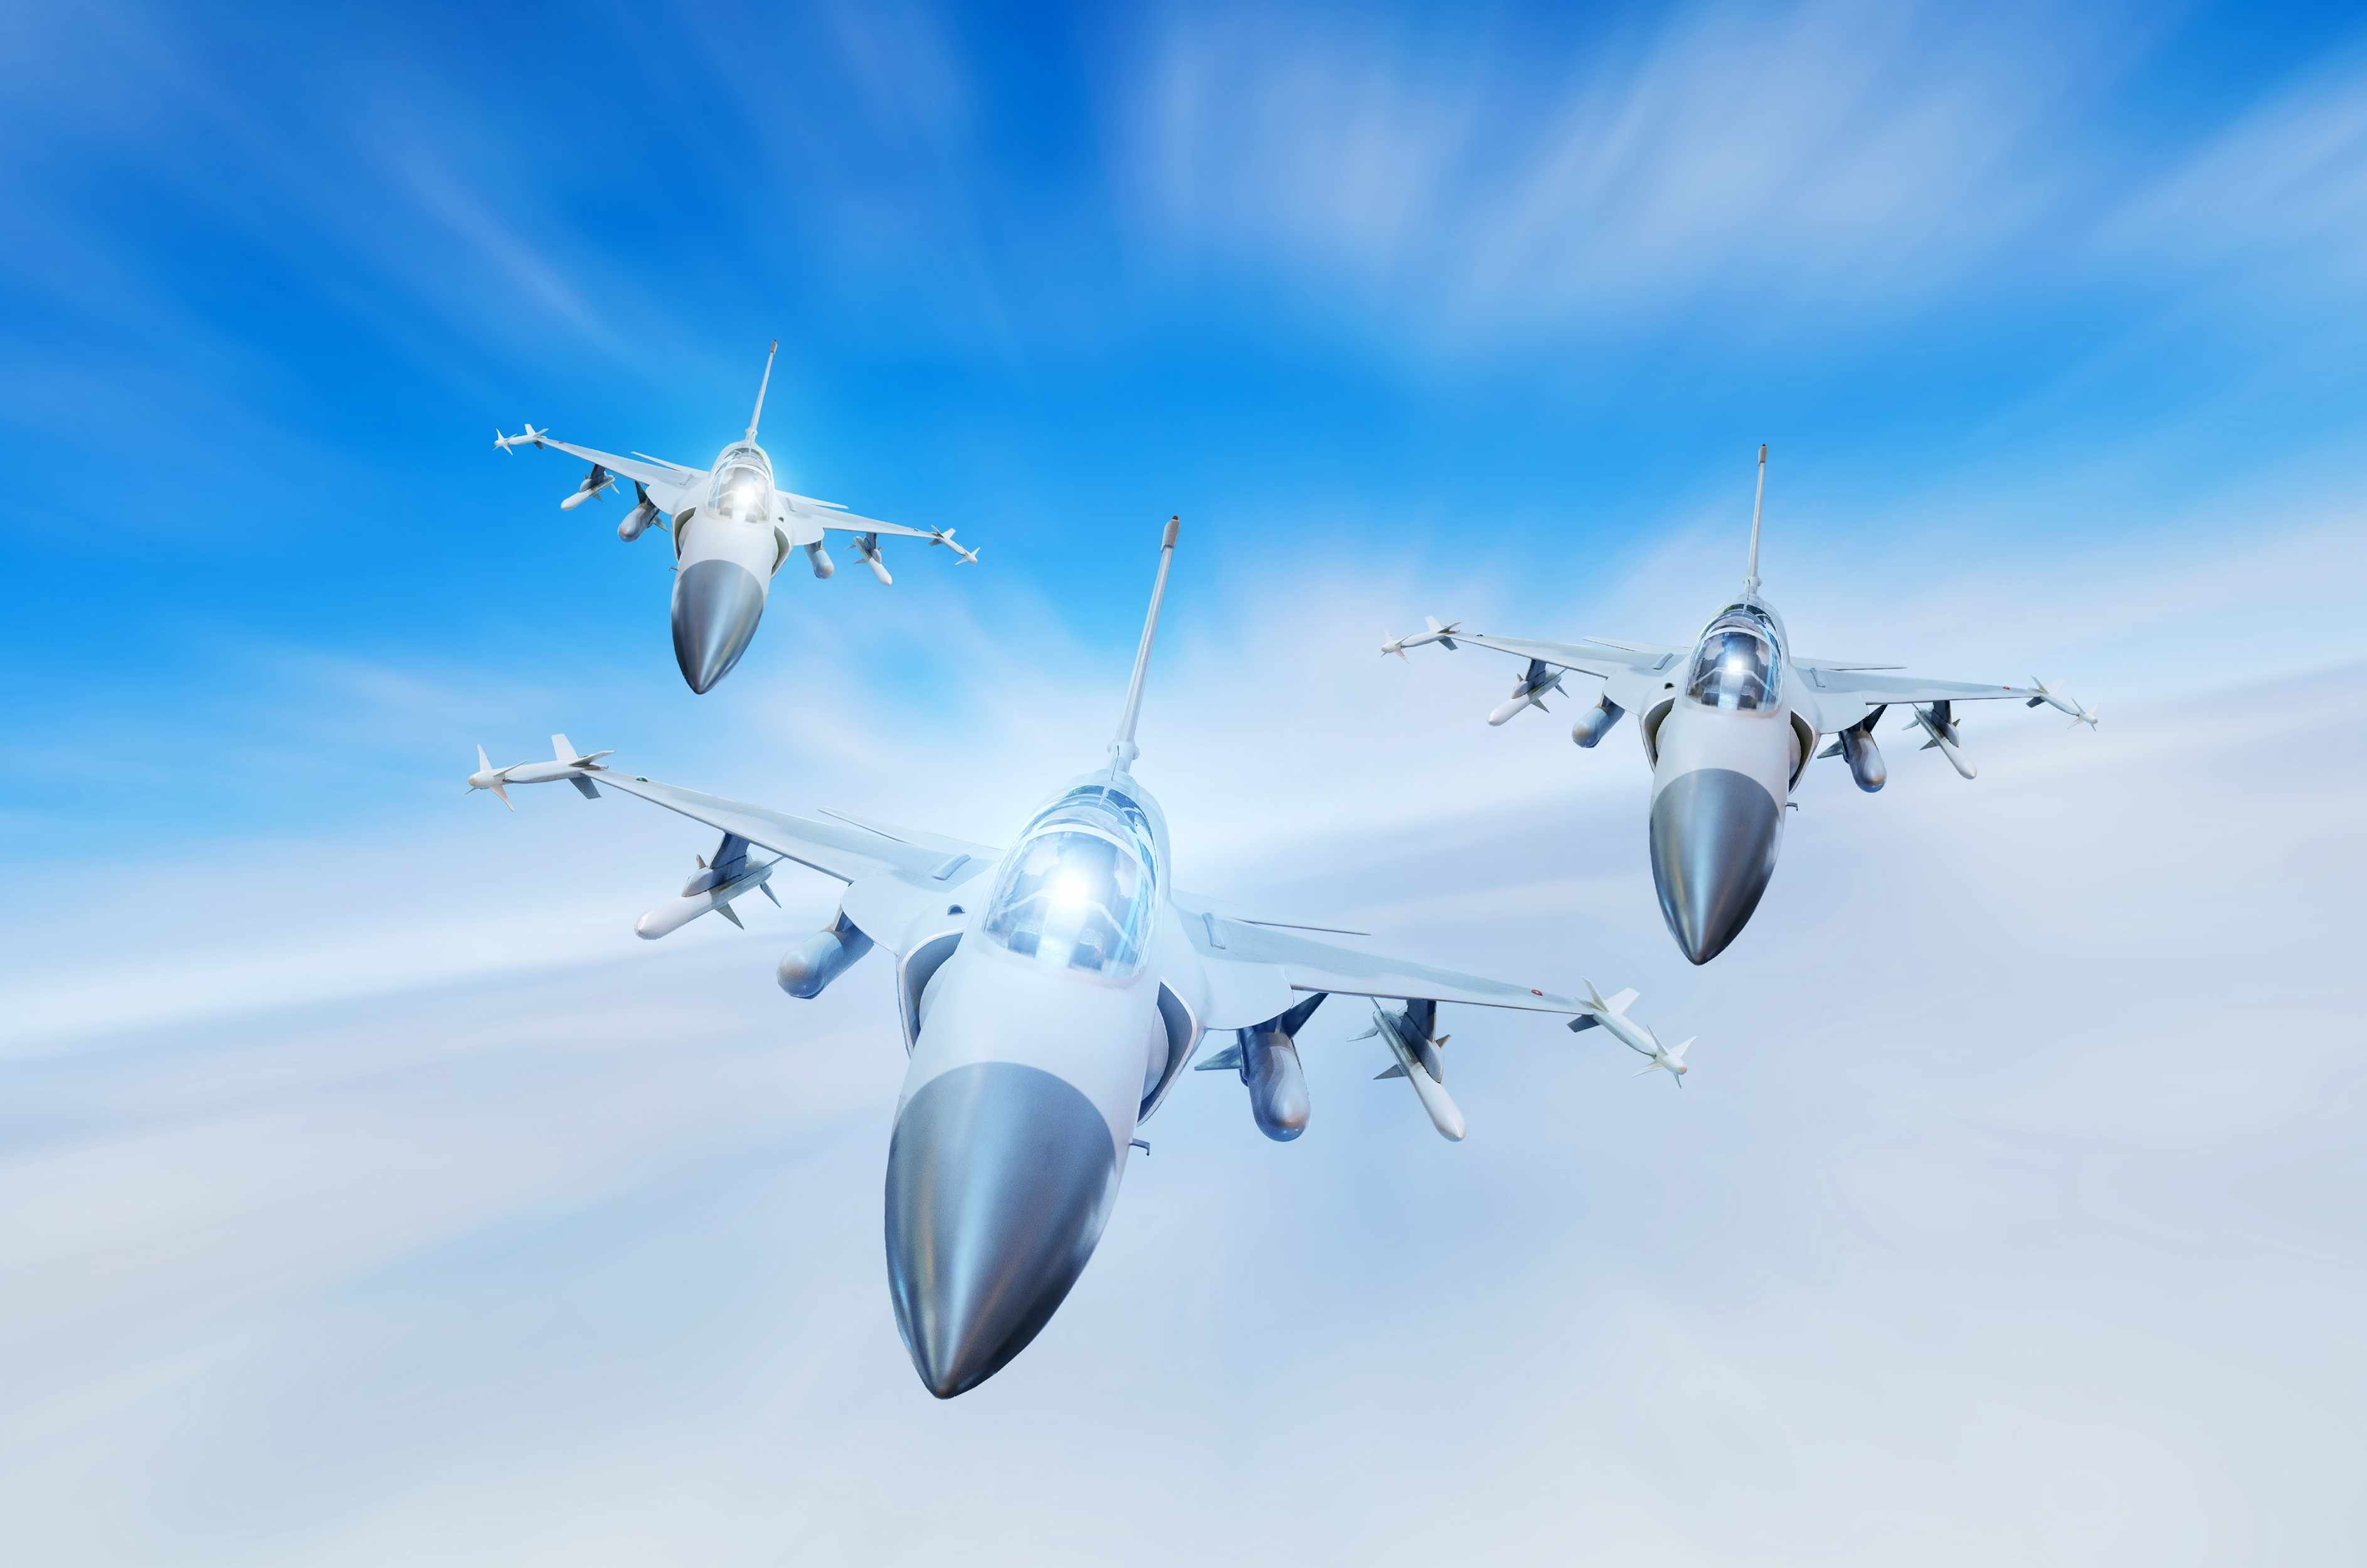 CGI of 3 air force fighter jets flying in formation